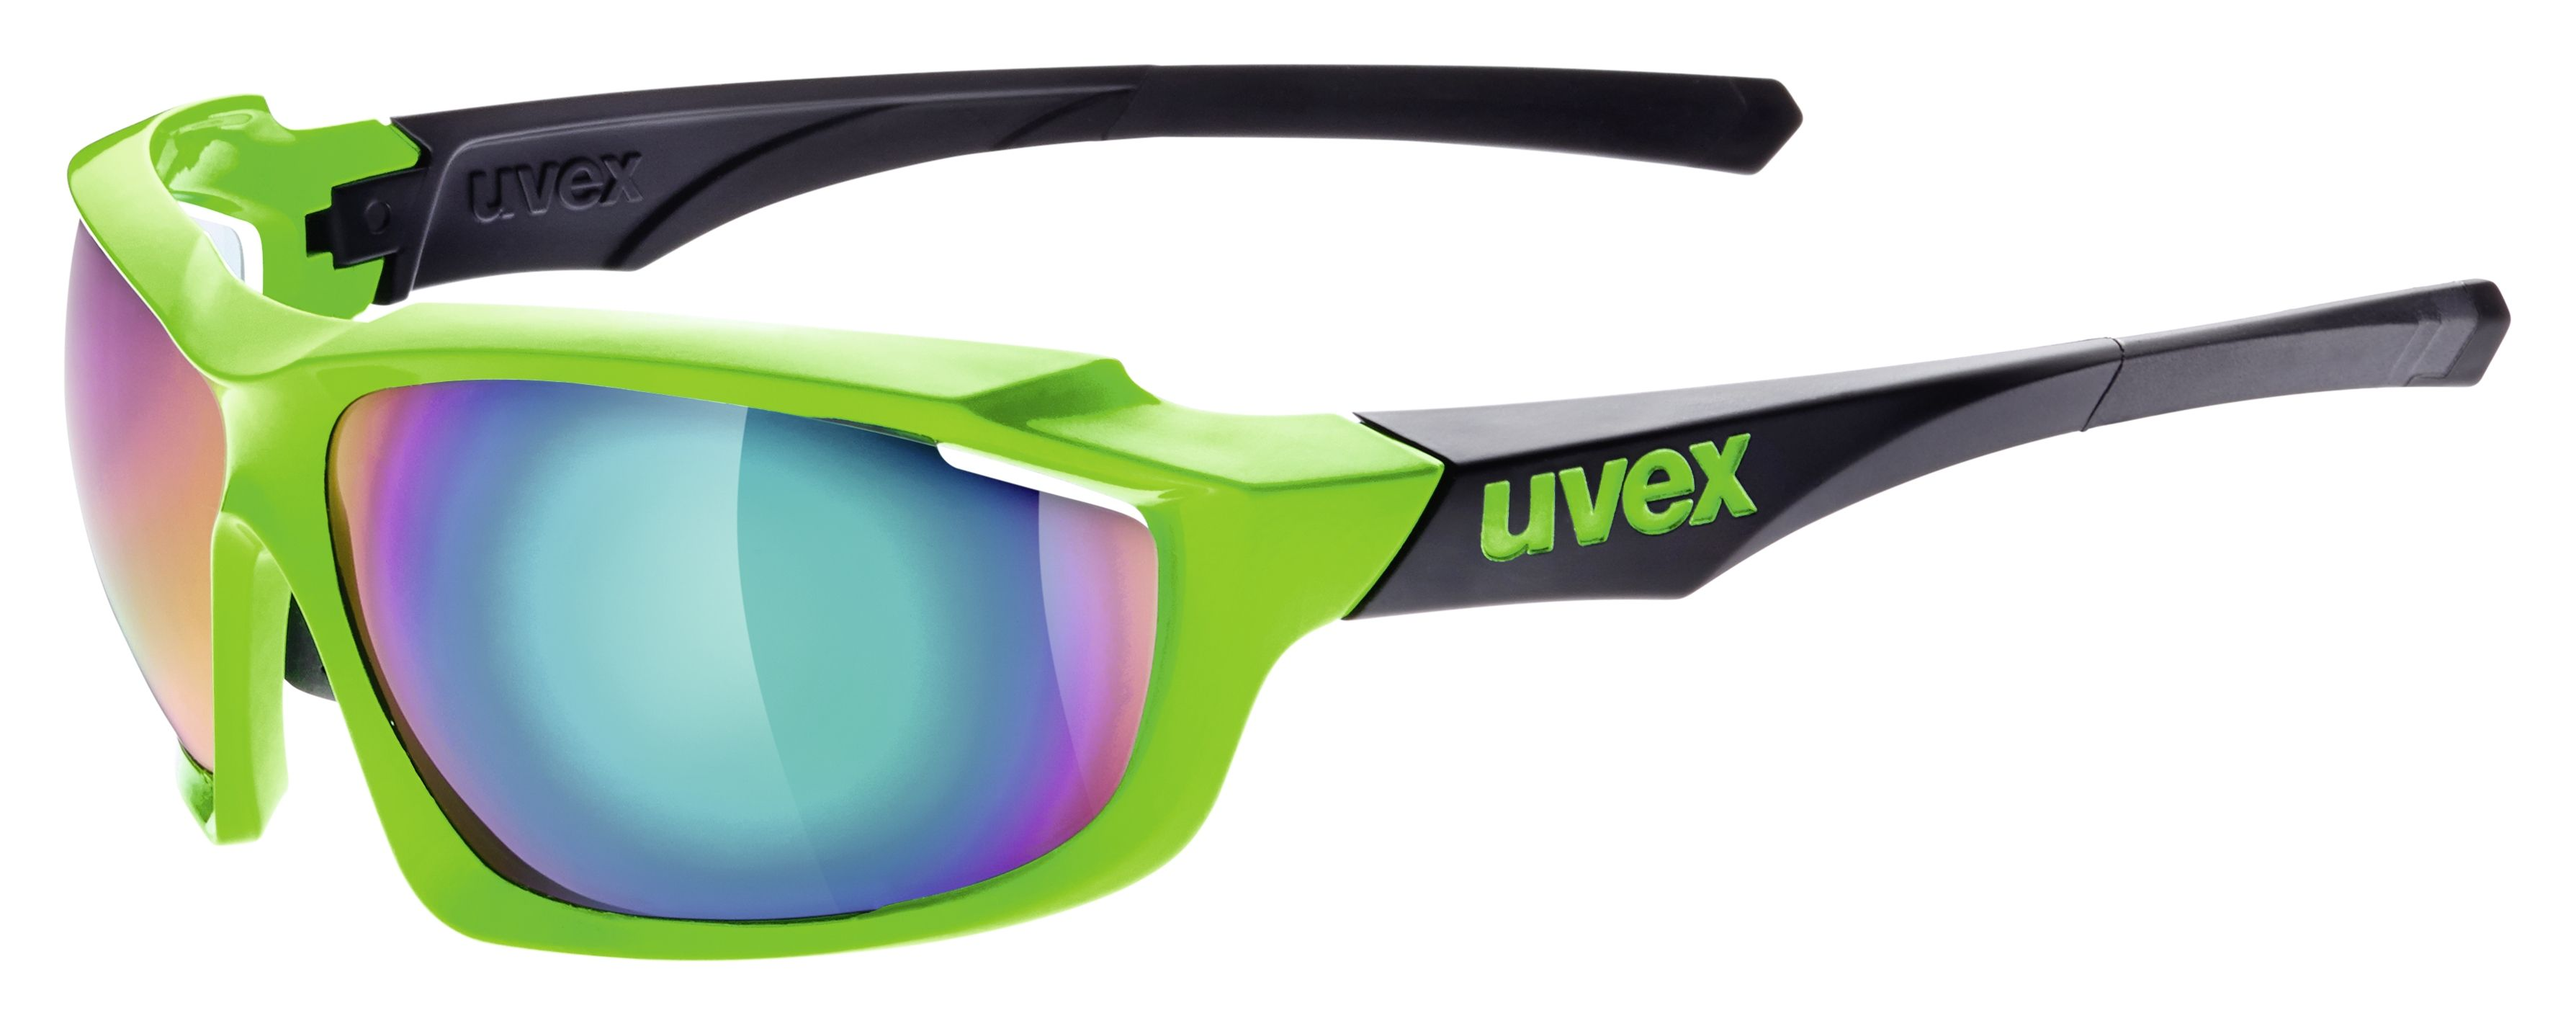 732f3173cf ... 710 Mountainbike sports glasses offer more than the usual average -  perfect styling and great protection including the modern curve 10  technology.